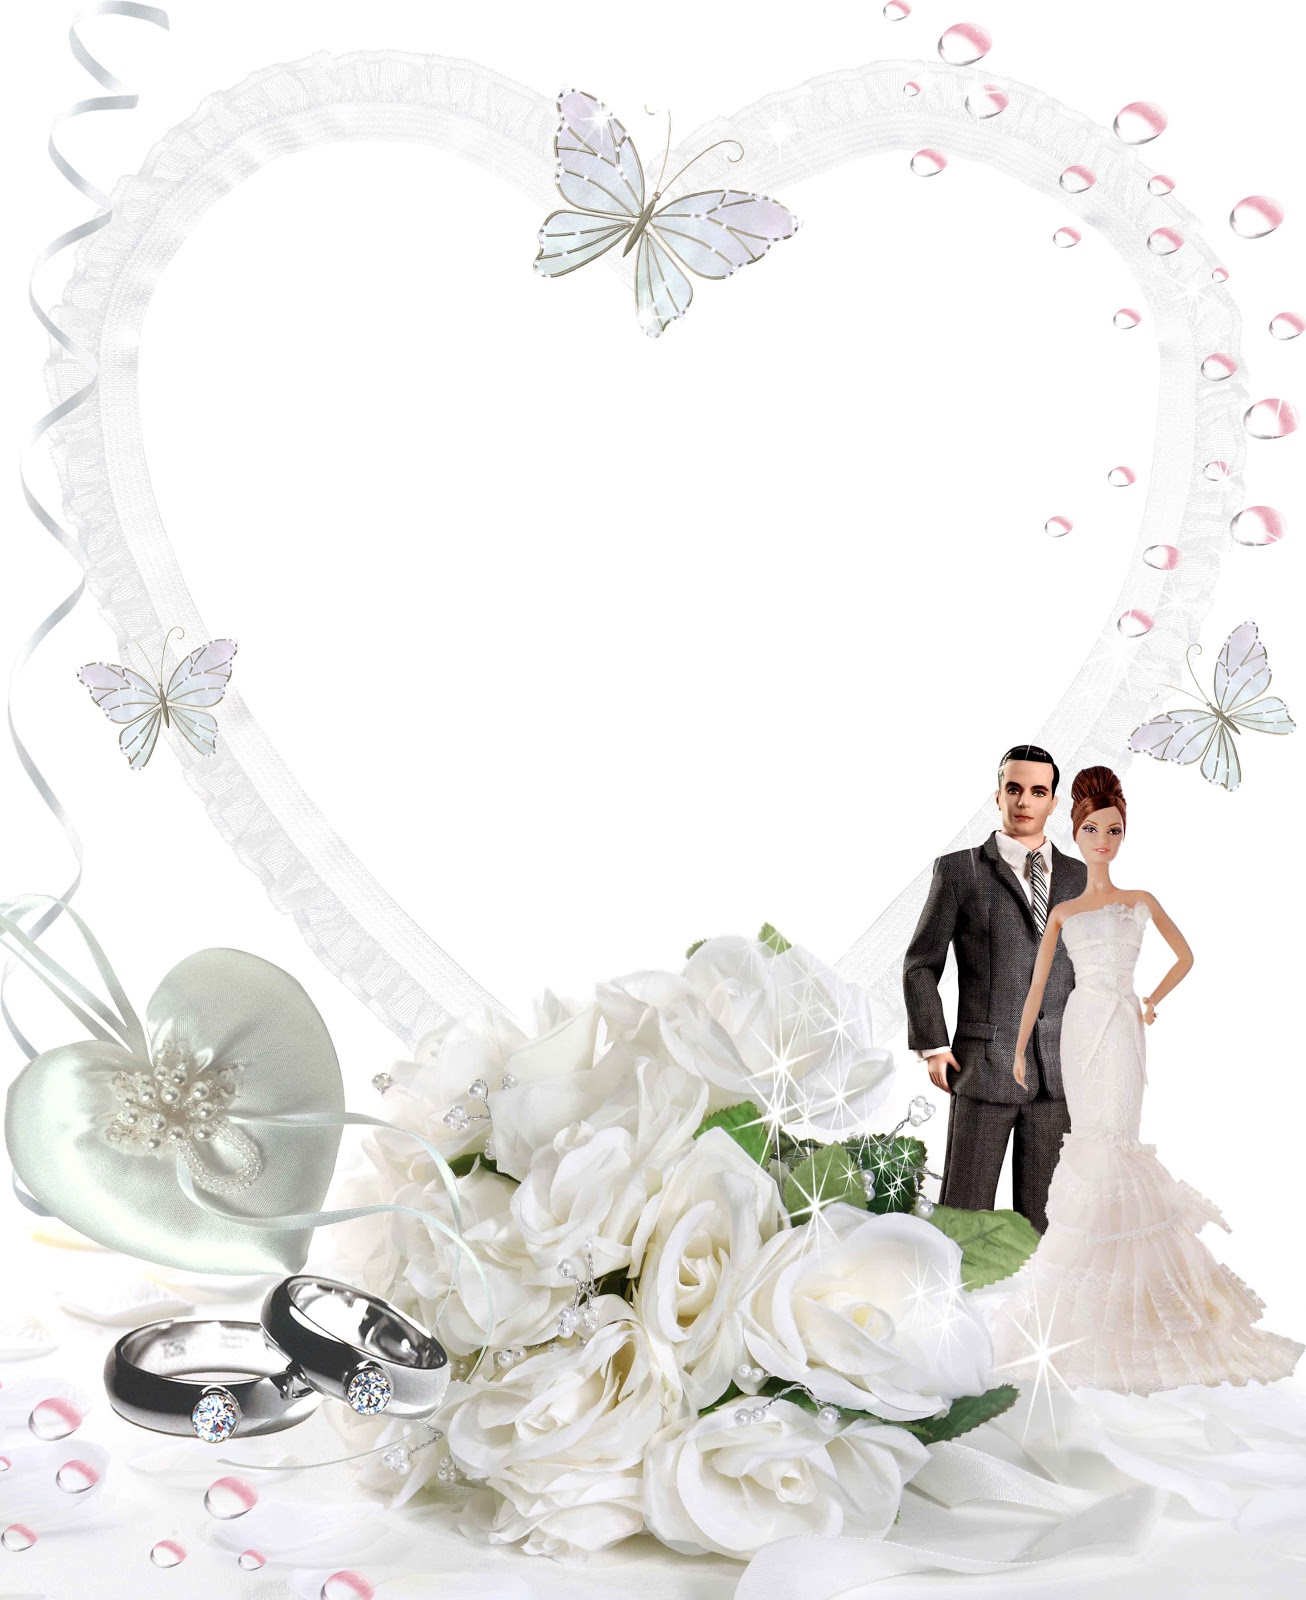 download wedding png frame (f